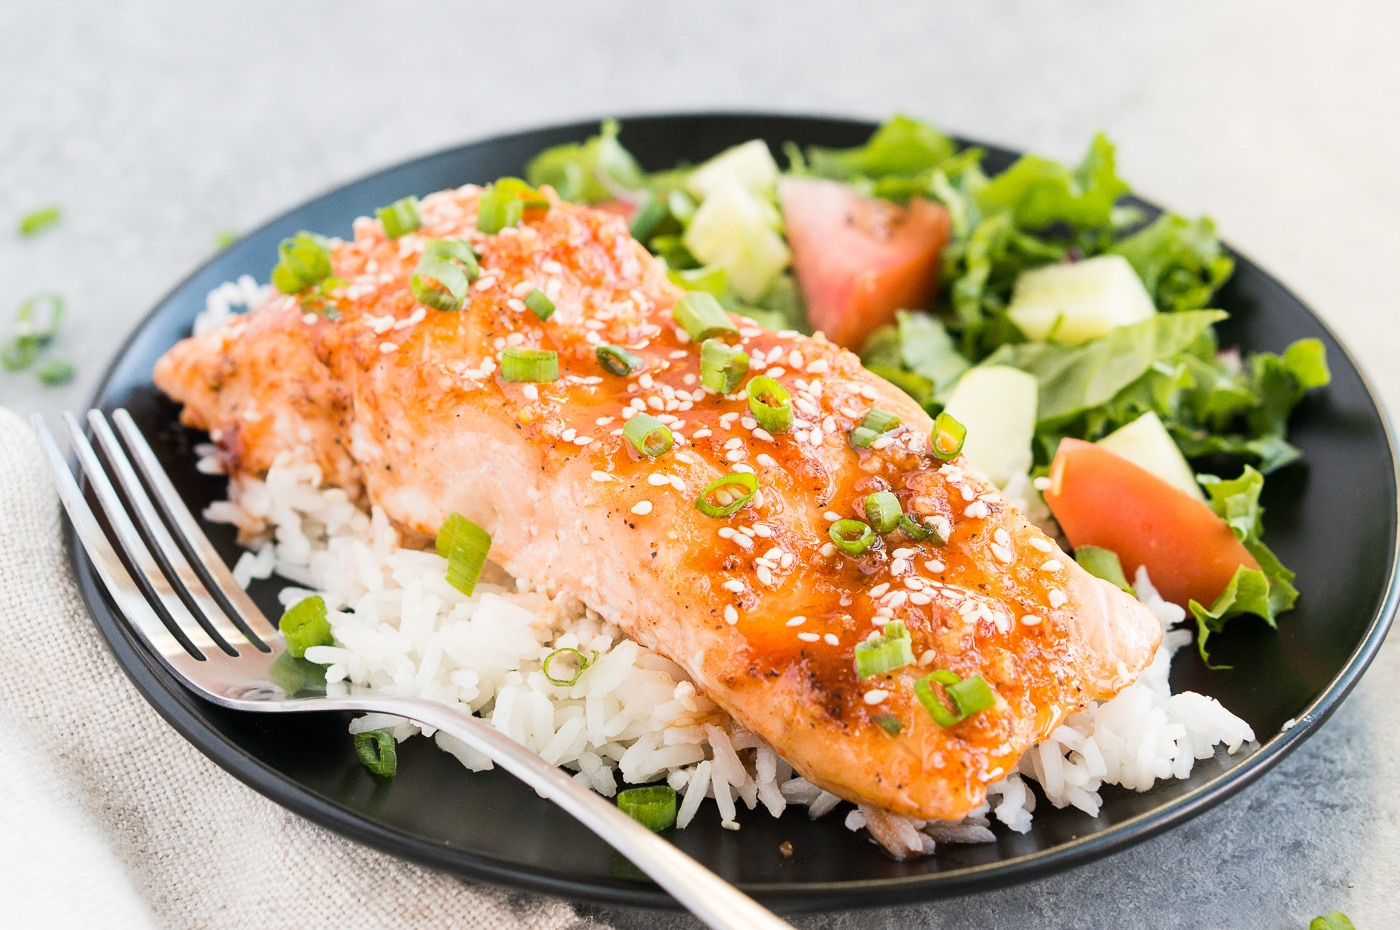 honey glazed salmon over rice with salad on a black plate